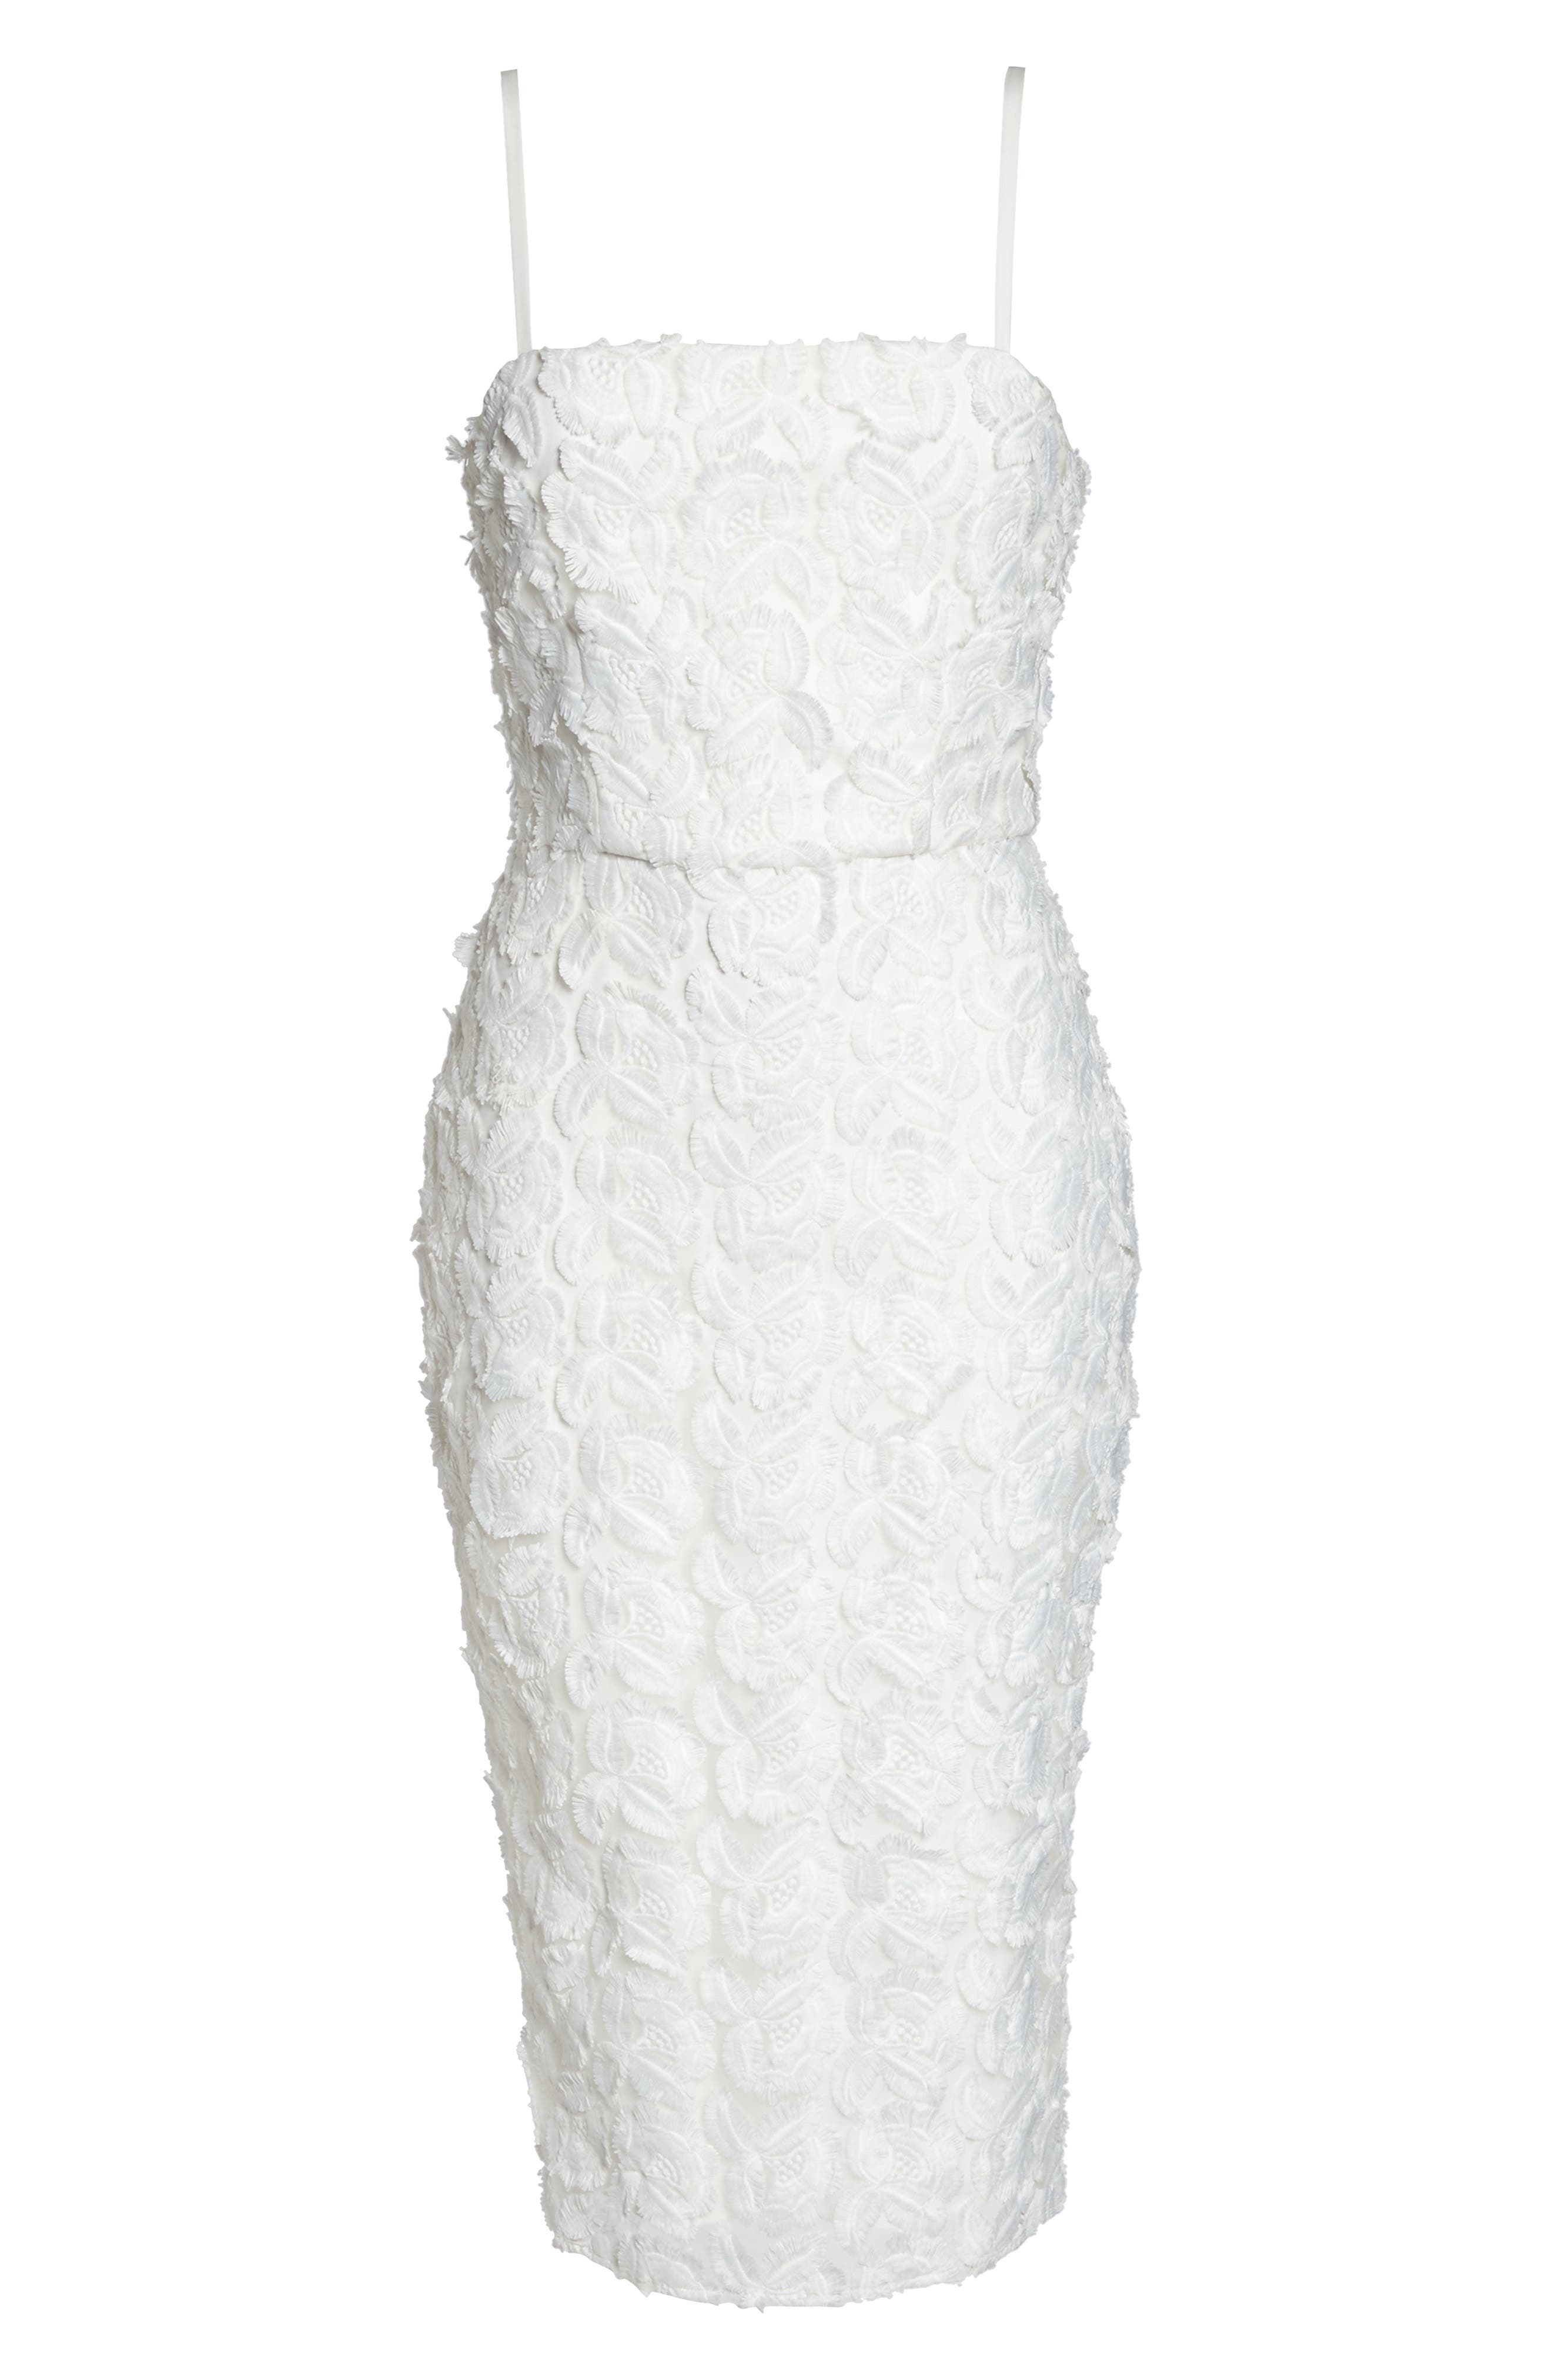 Floral Mirage Embroidered Lace Dress,                             Alternate thumbnail 6, color,                             Gardenia